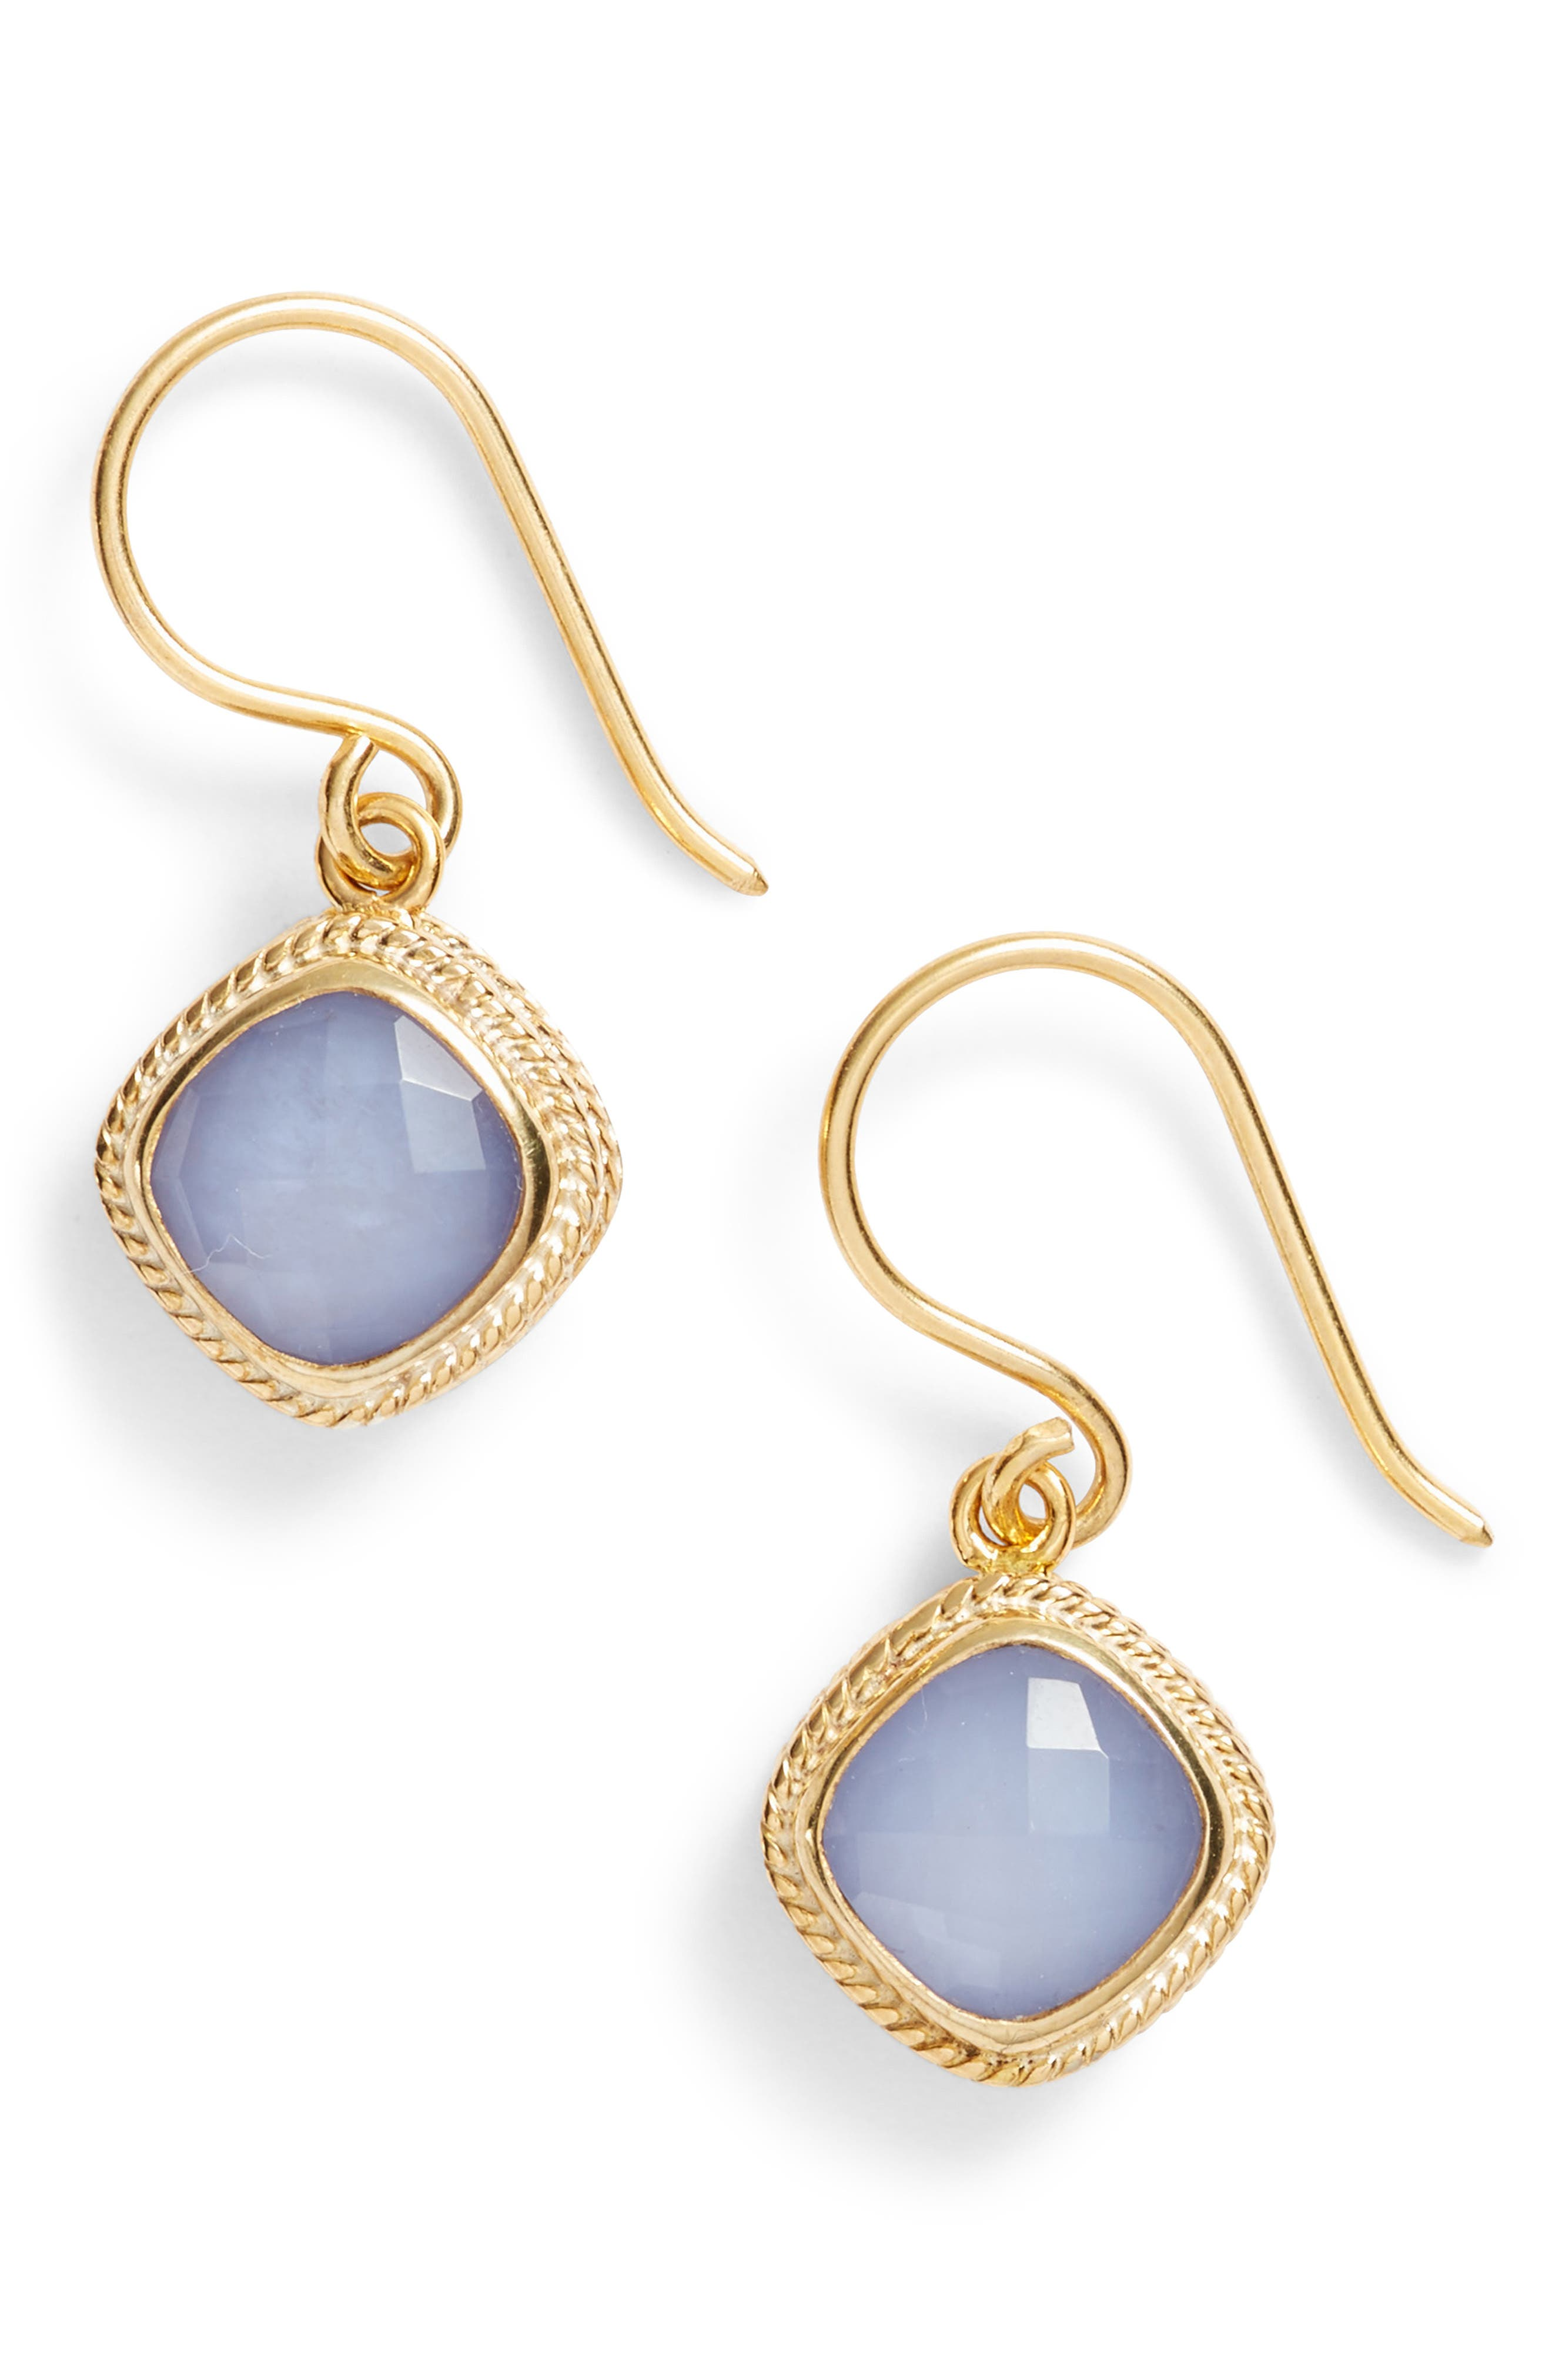 Drop Earrings,                         Main,                         color, Gold/ Blue Chalcedony